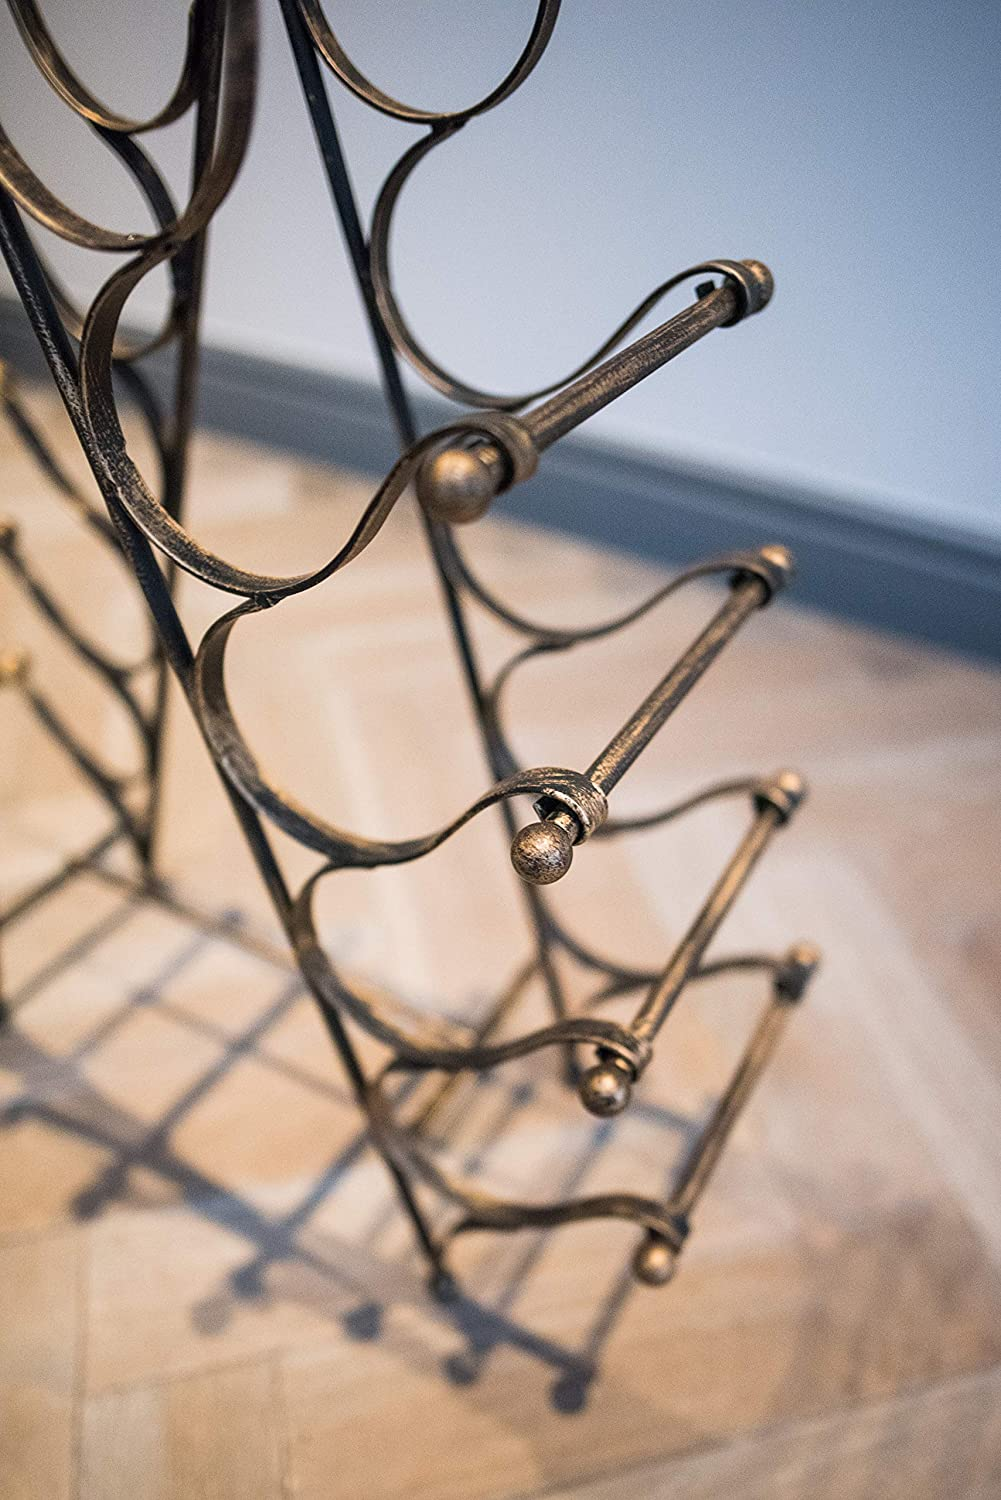 Stylish Storage for 10 Bottles Equestrian Inspired Free Standing Metal Wine Rack